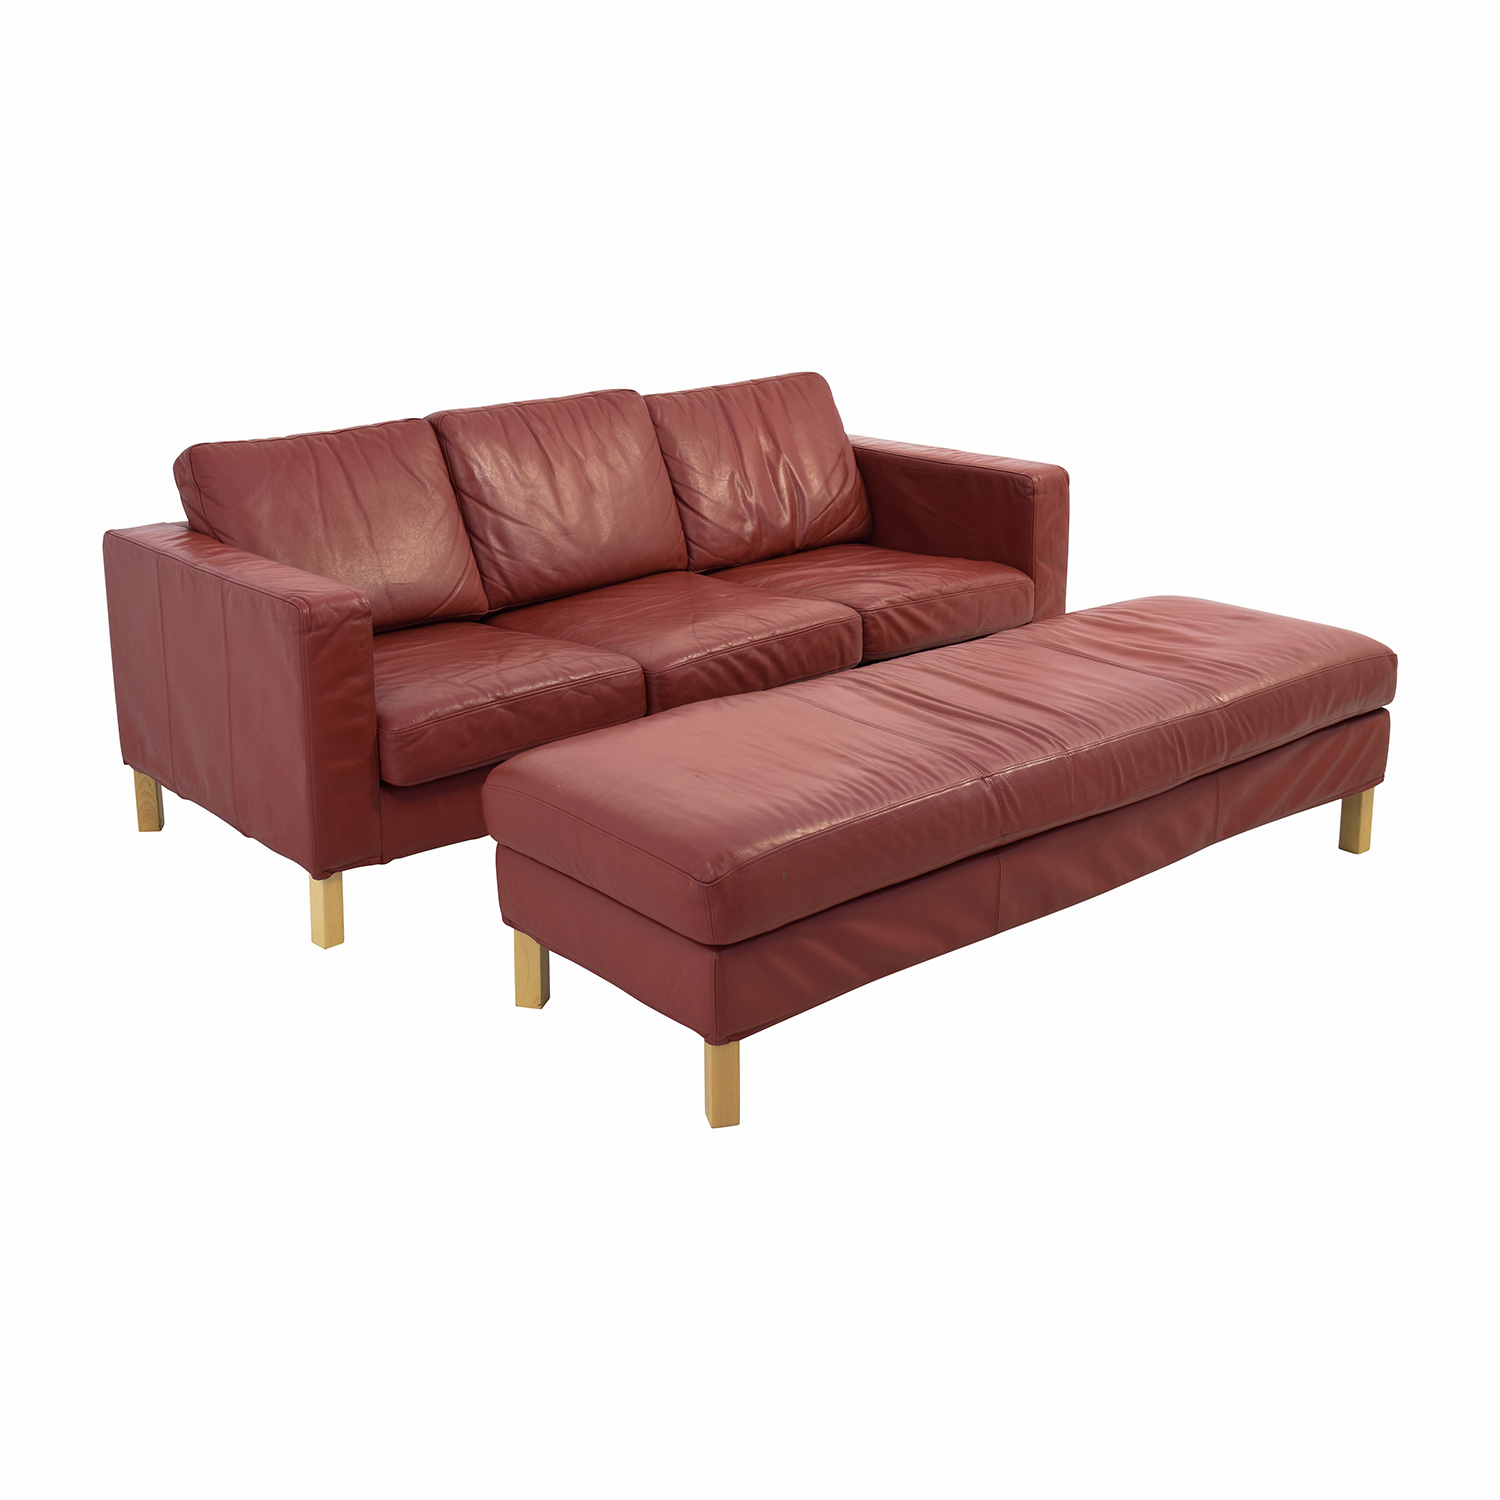 Contemporary Red Leather Couch and Ottoman sale